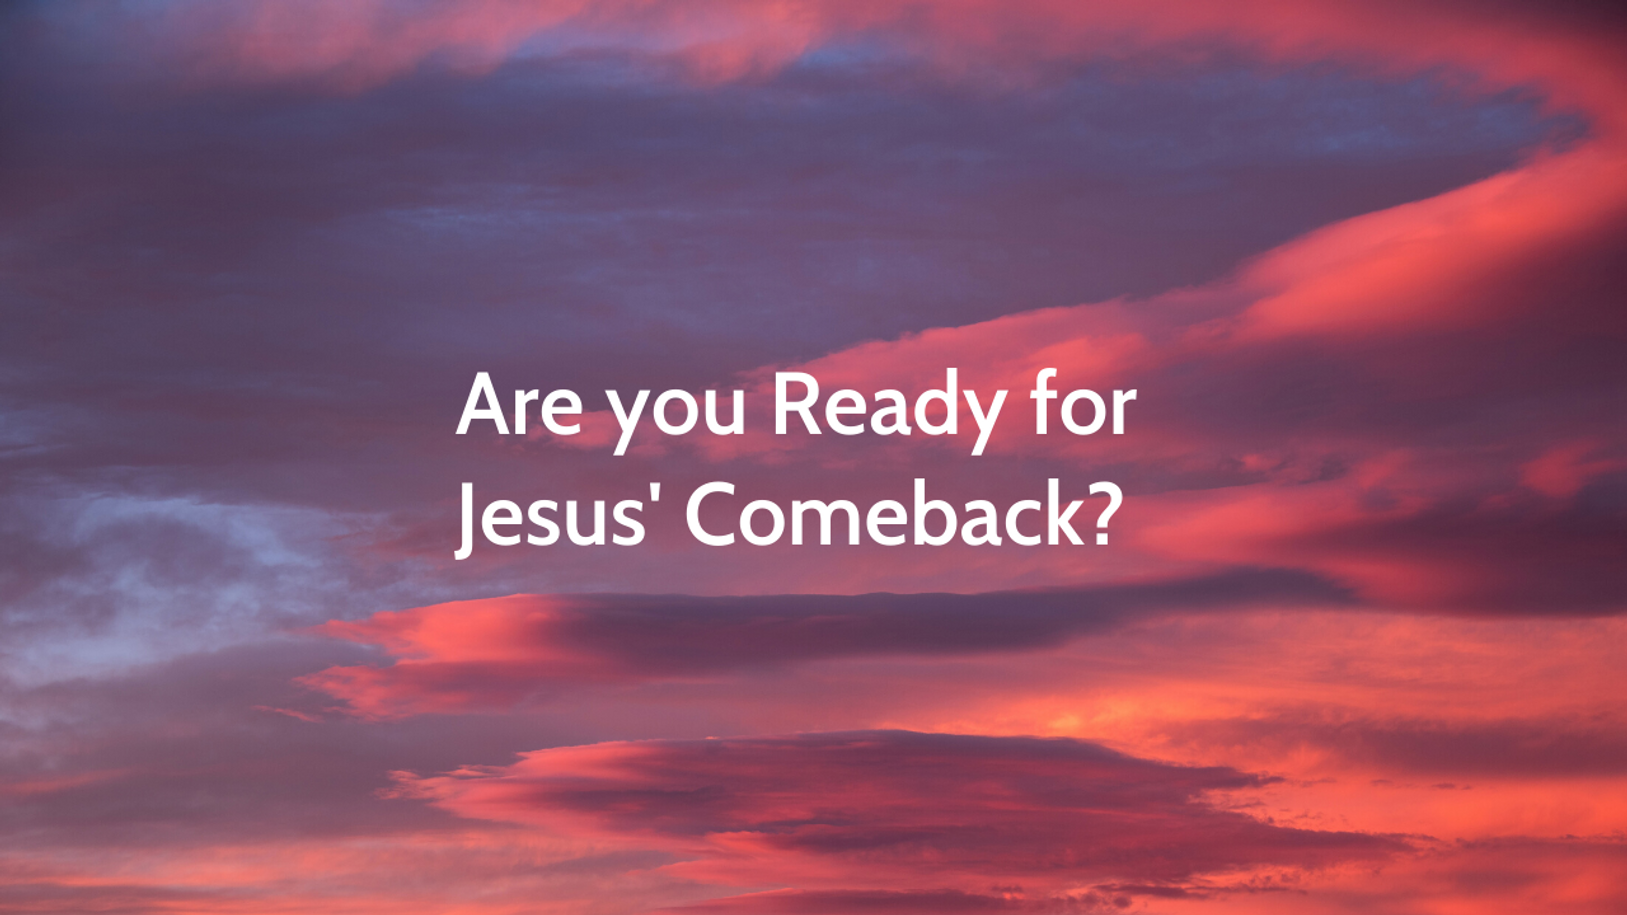 Are you Ready for Jesus' Comeback?